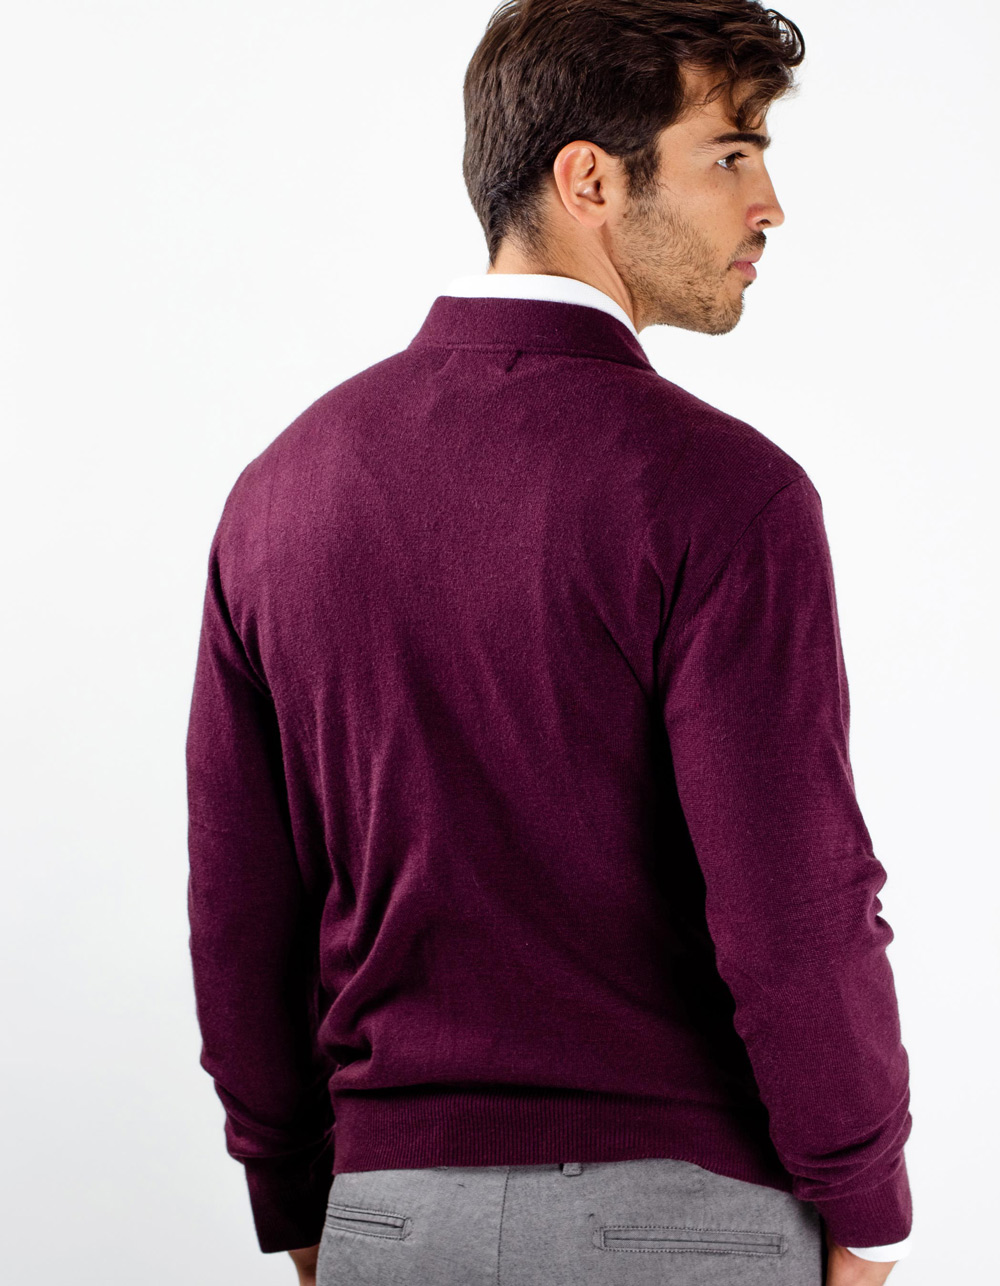 Maroon neck sweater with zip - Backside